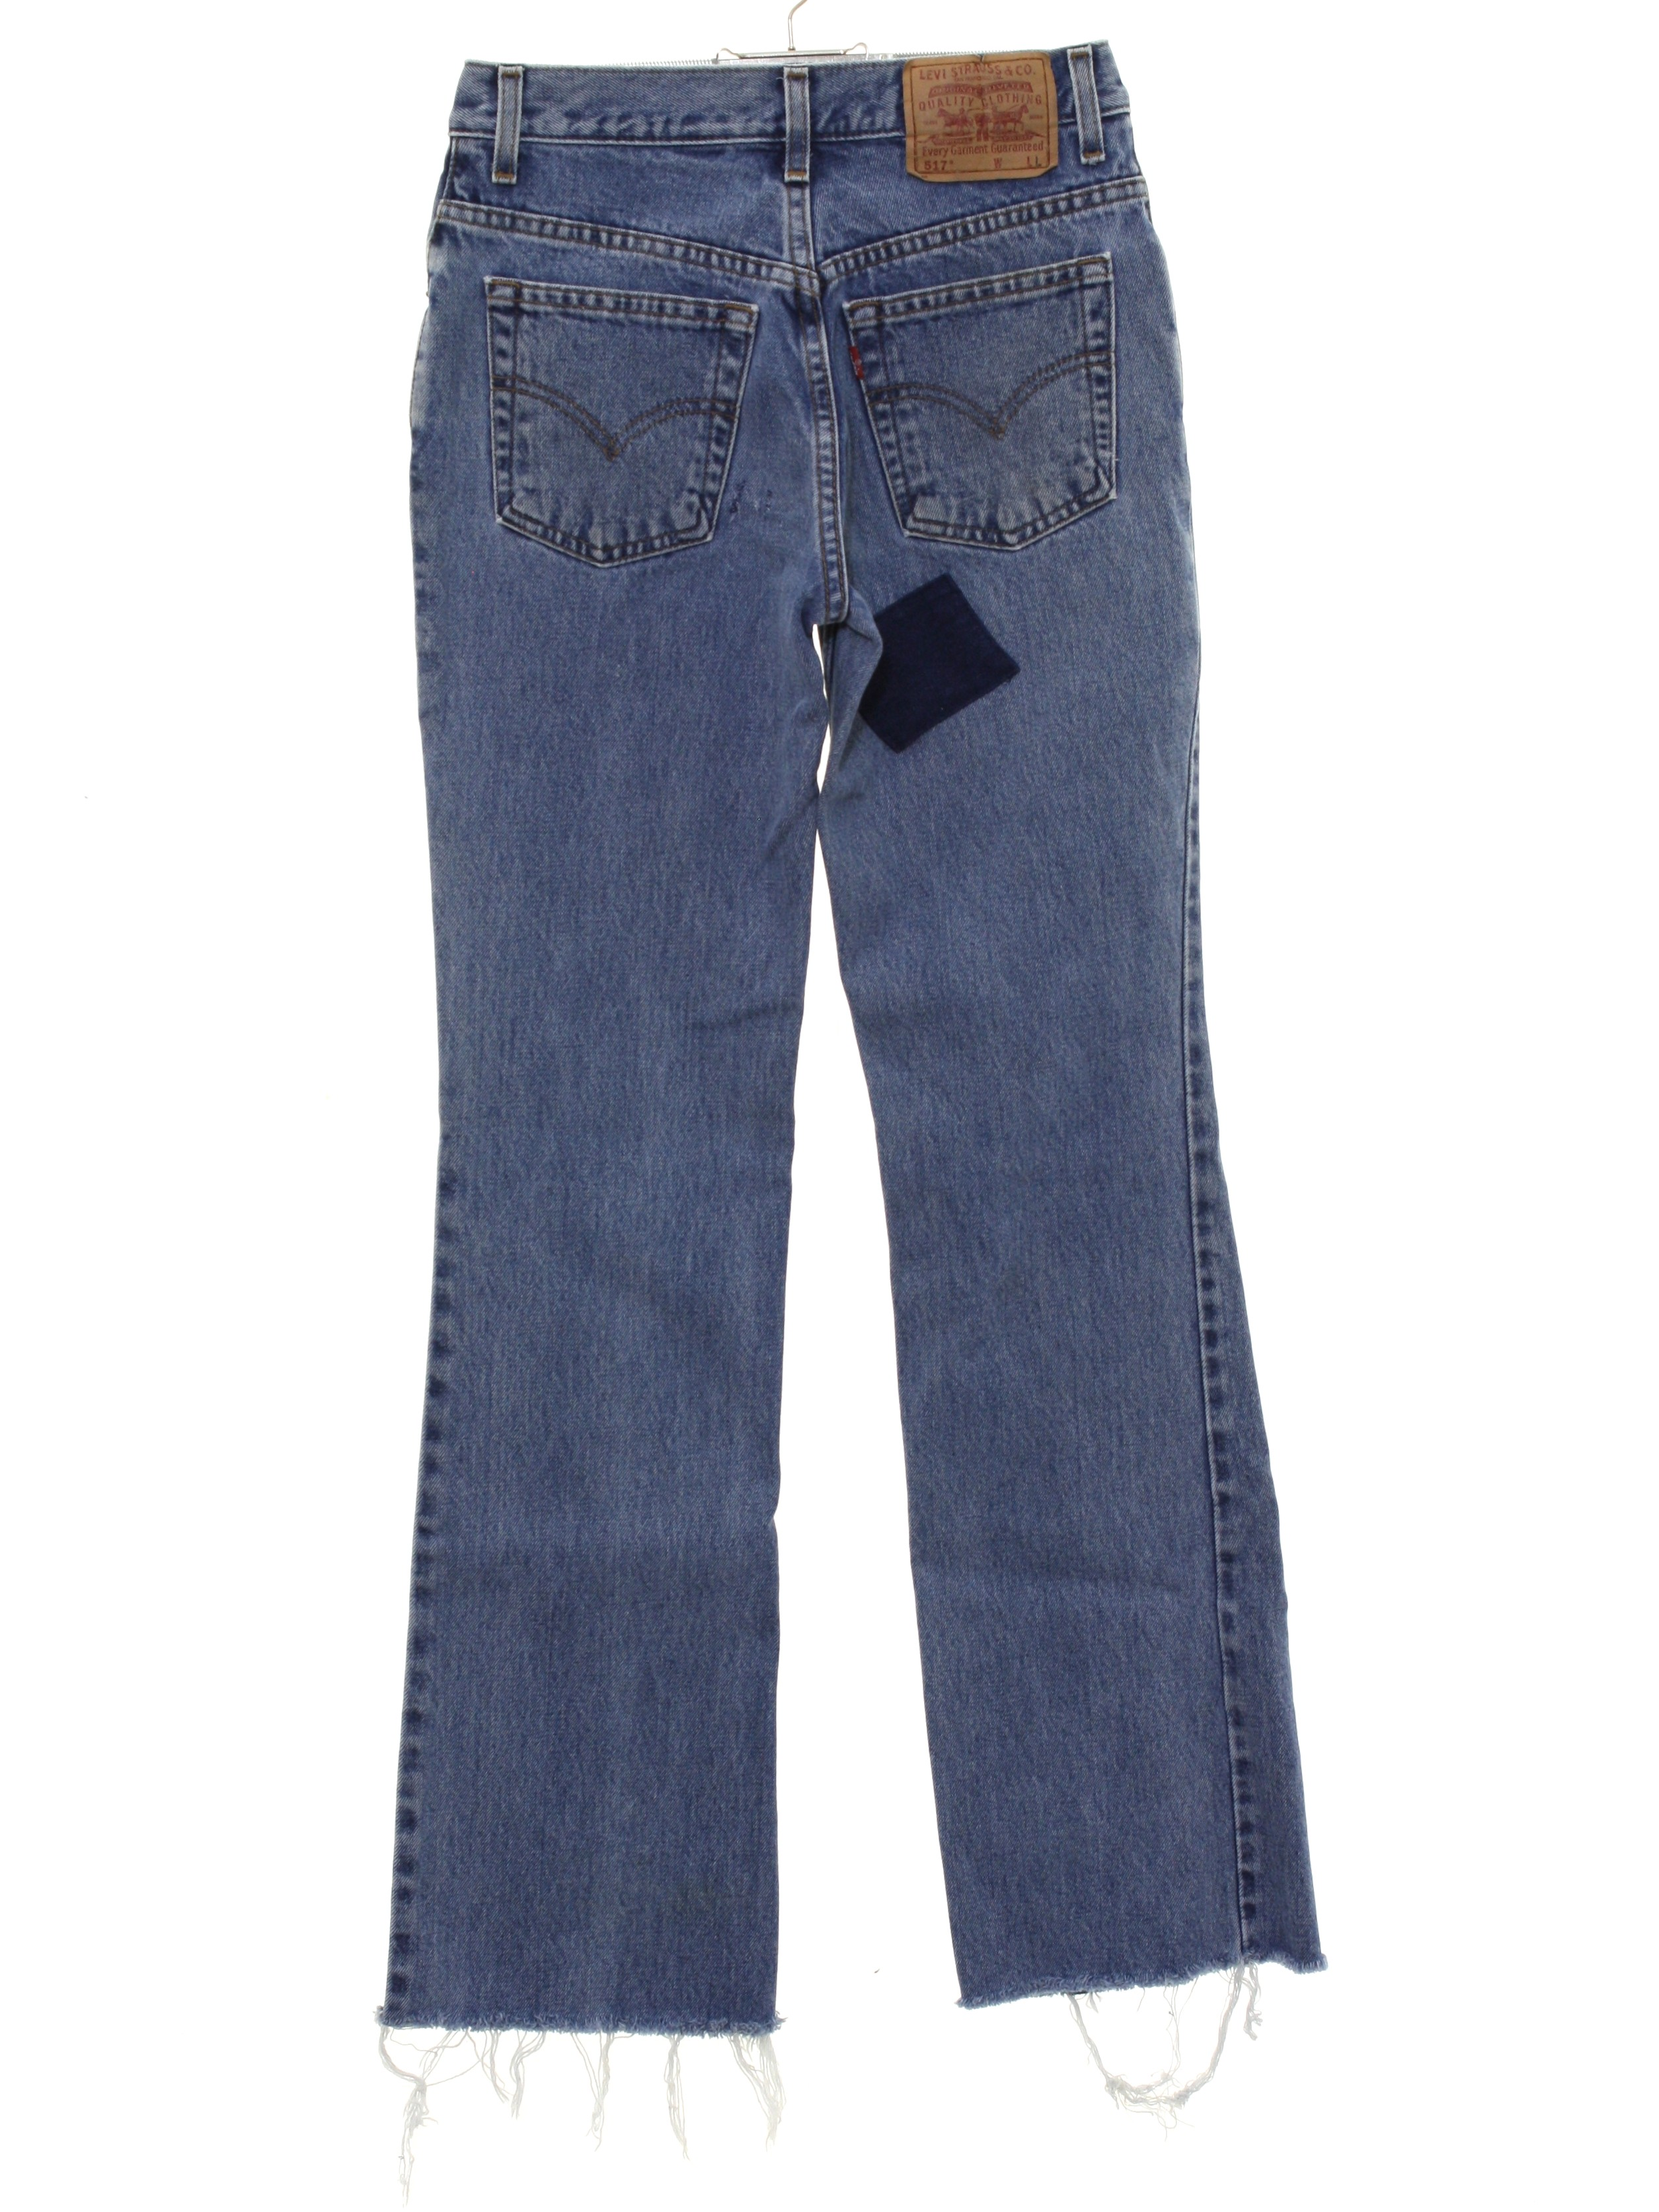 0501092c1690bf 1970's Flared Pants / Flares (Levis 517): 70s style (made in 90s ...